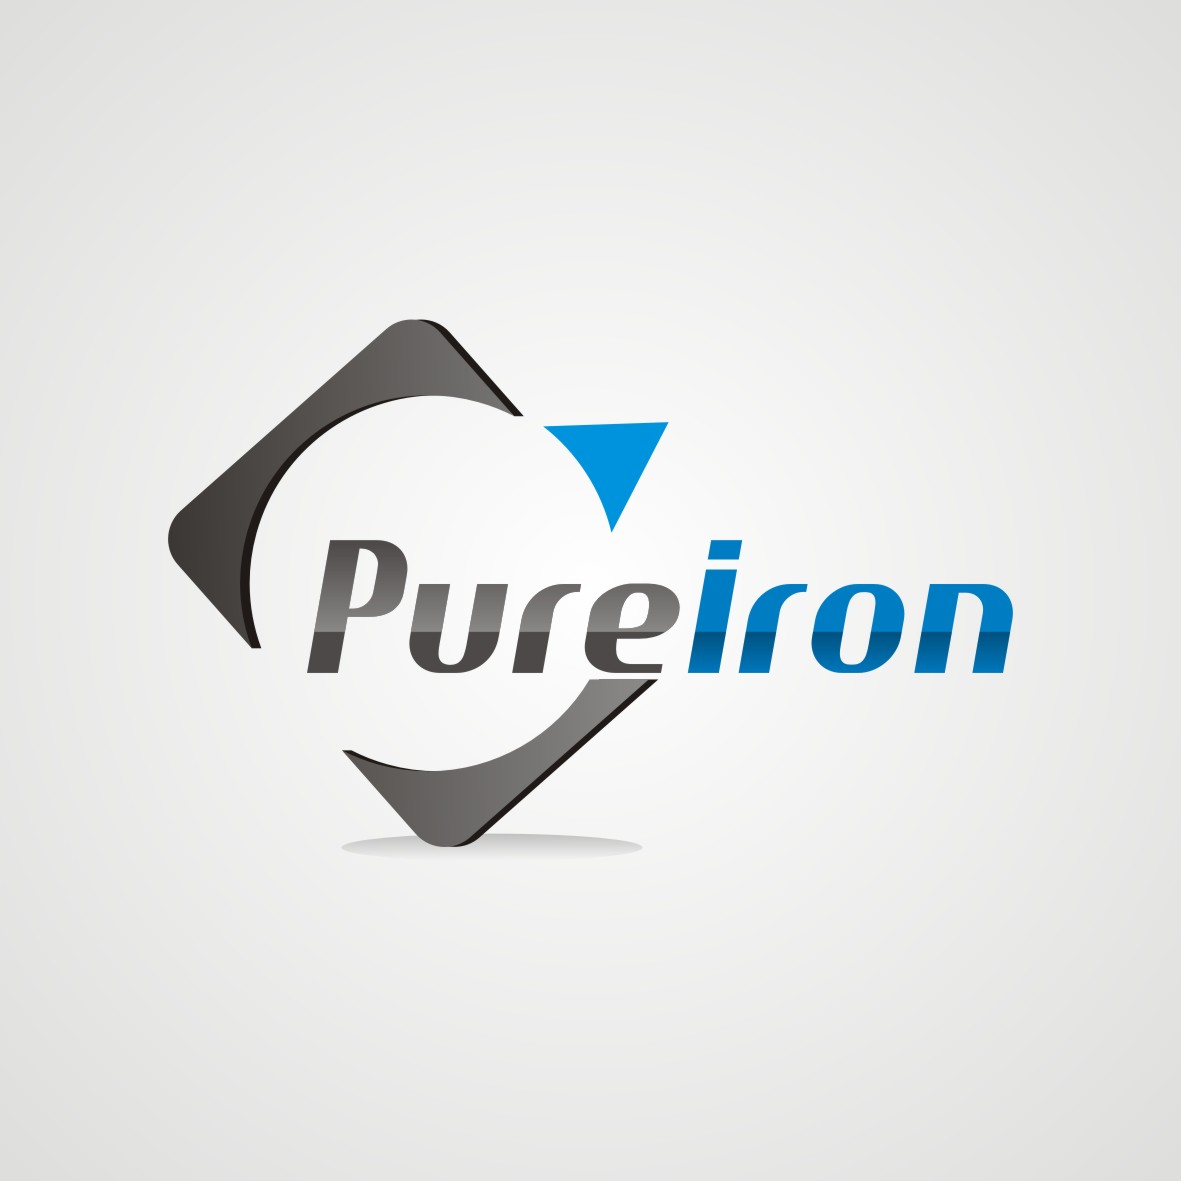 Logo Design by arteo_design - Entry No. 154 in the Logo Design Contest Fun Logo Design for Pure Iron.